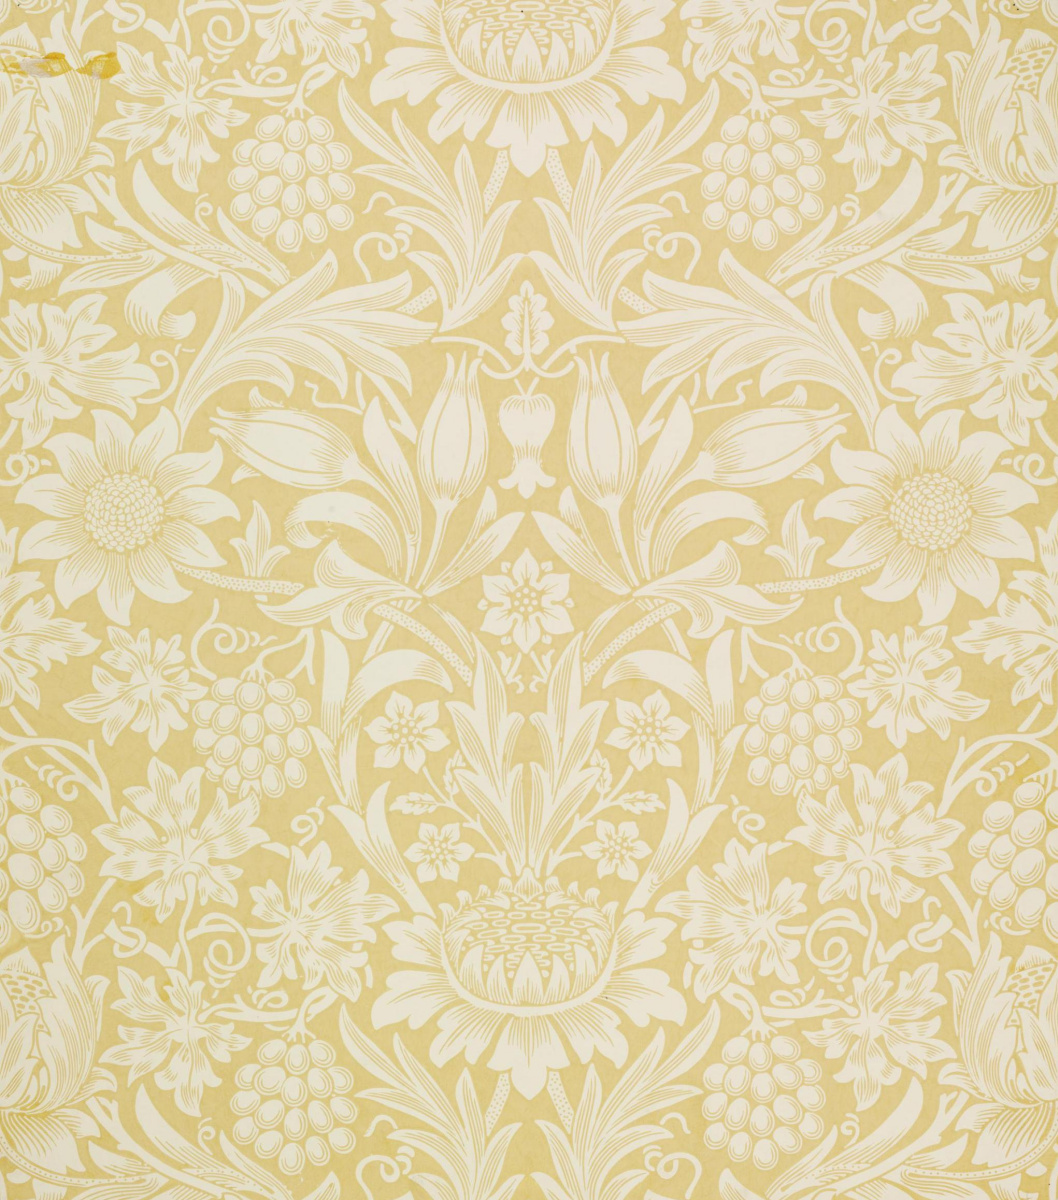 1d952c8c627a Sunflower by William Morris: History, Analysis & Facts